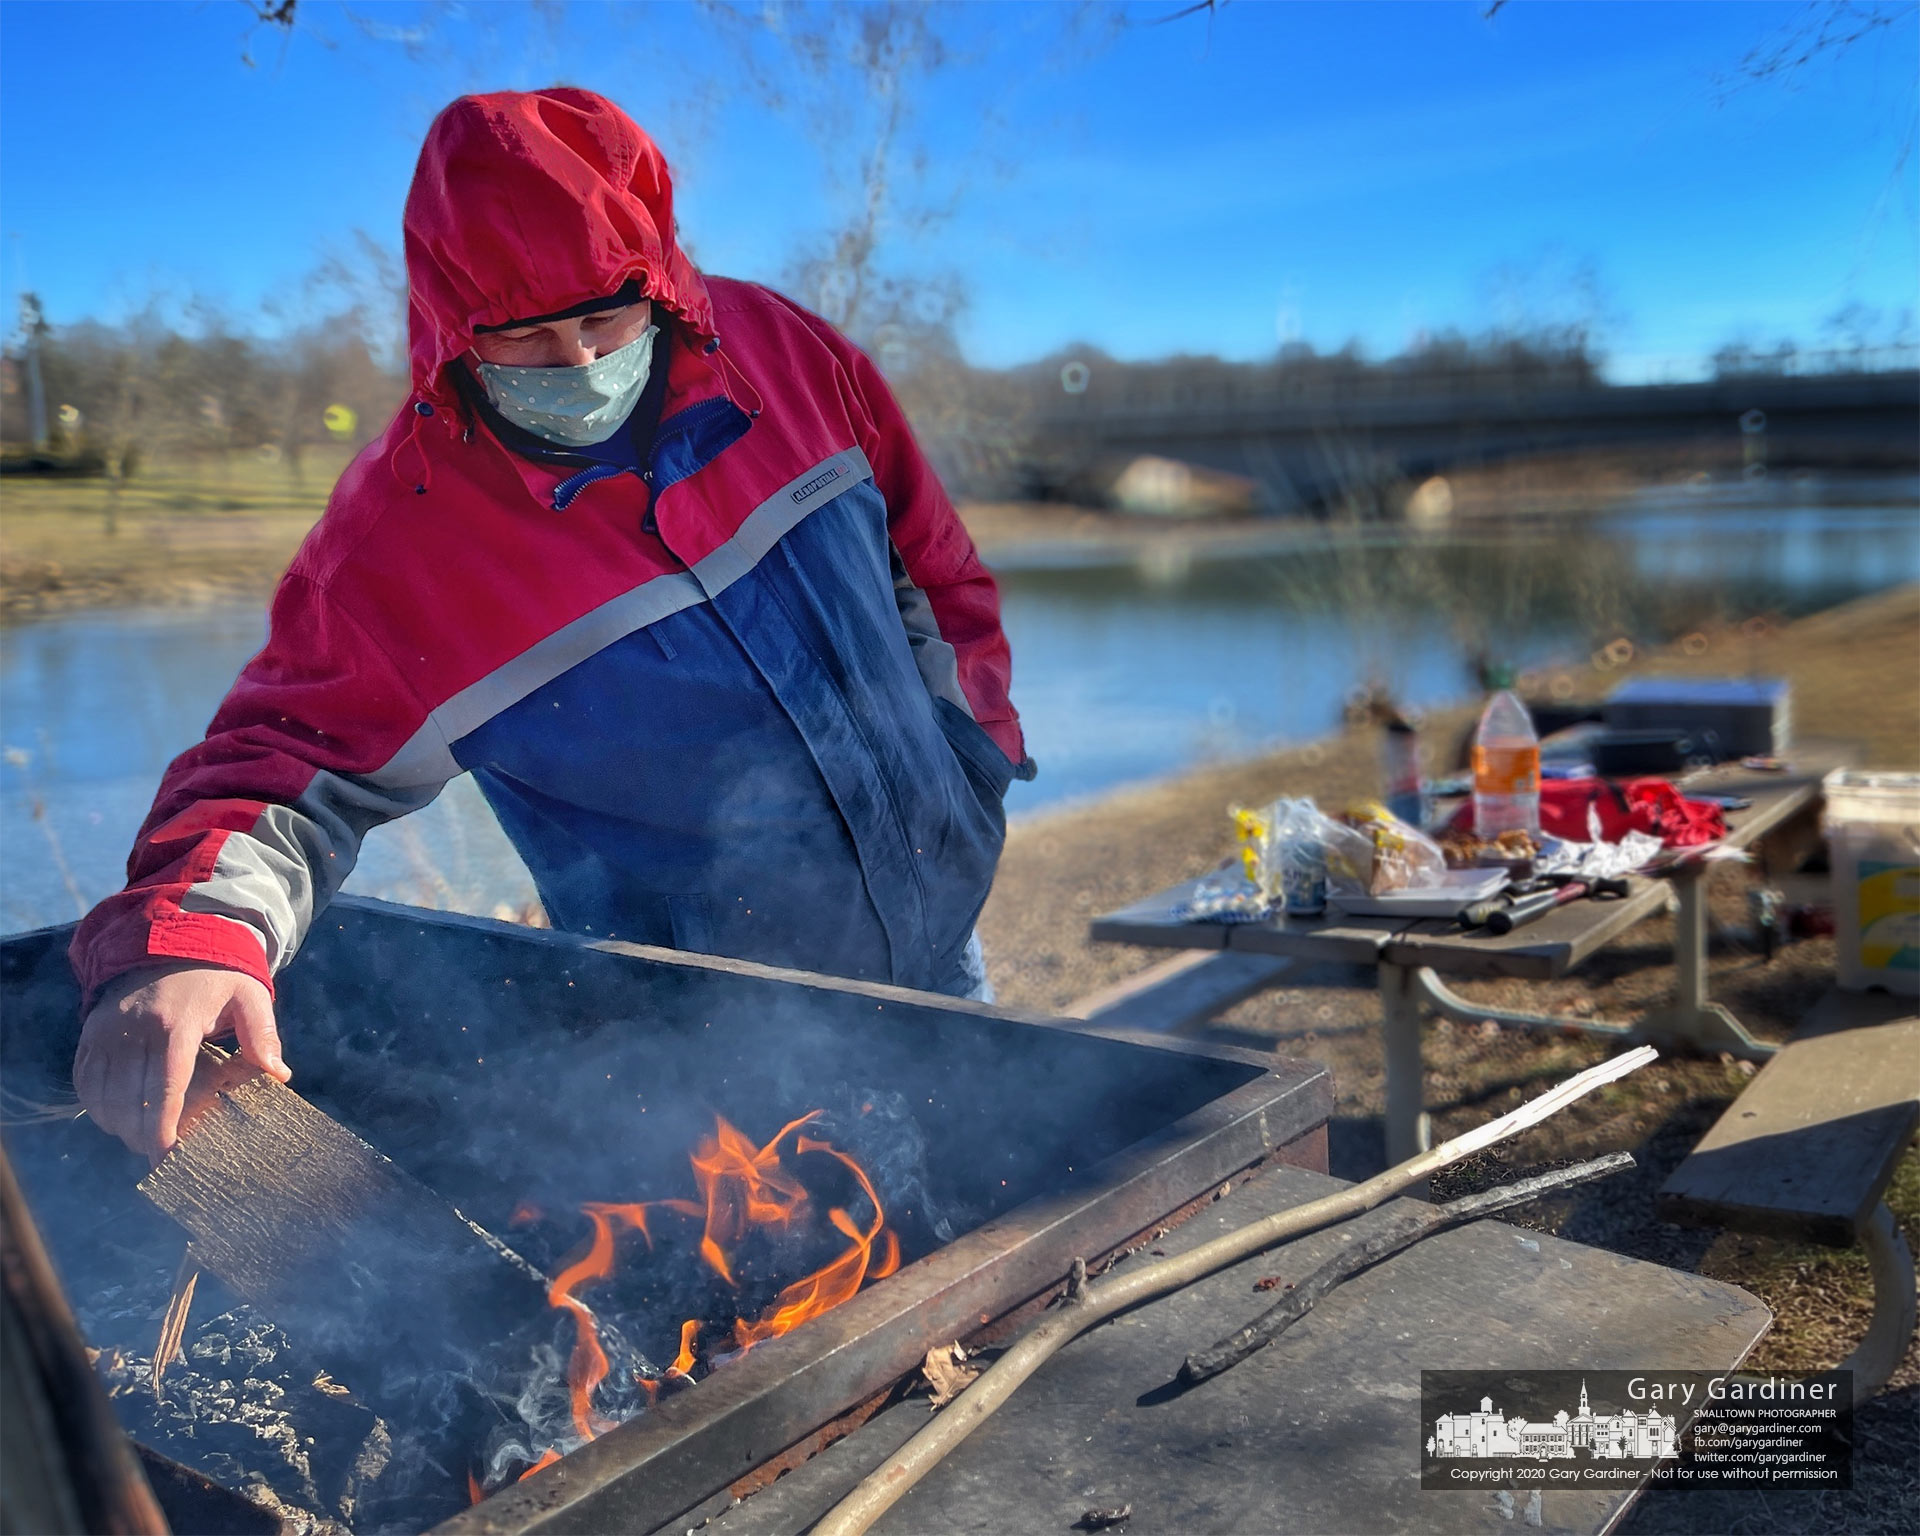 A fisherman feeds kindling into the grill behind the old Senior Center on Alum Creek as he waits for his friend to reel in a fresh fish for the fire. My Final Photo for Jan. 23, 2021.